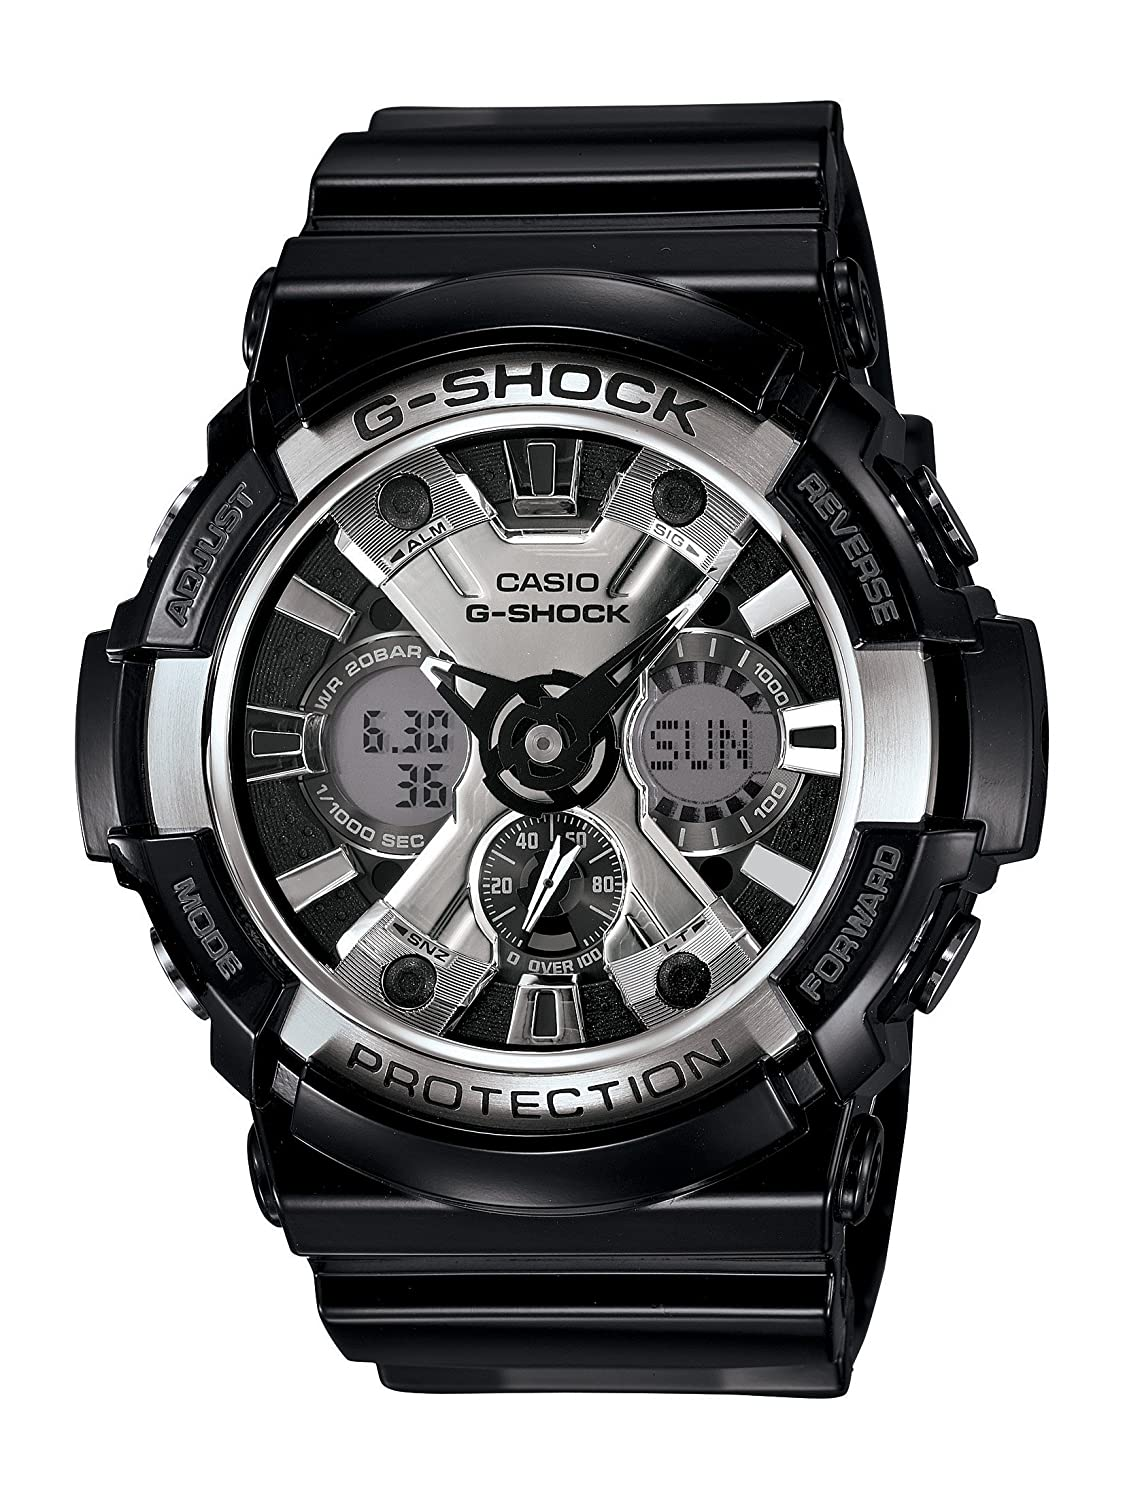 80174b6dec6 Amazon.com  Casio Men s XL Series G-Shock Quartz 200M WR Shock Resistant  Resin Color  Glossy Black and Chrome Face (Model GA-200BW-1ACR)  Casio   Watches